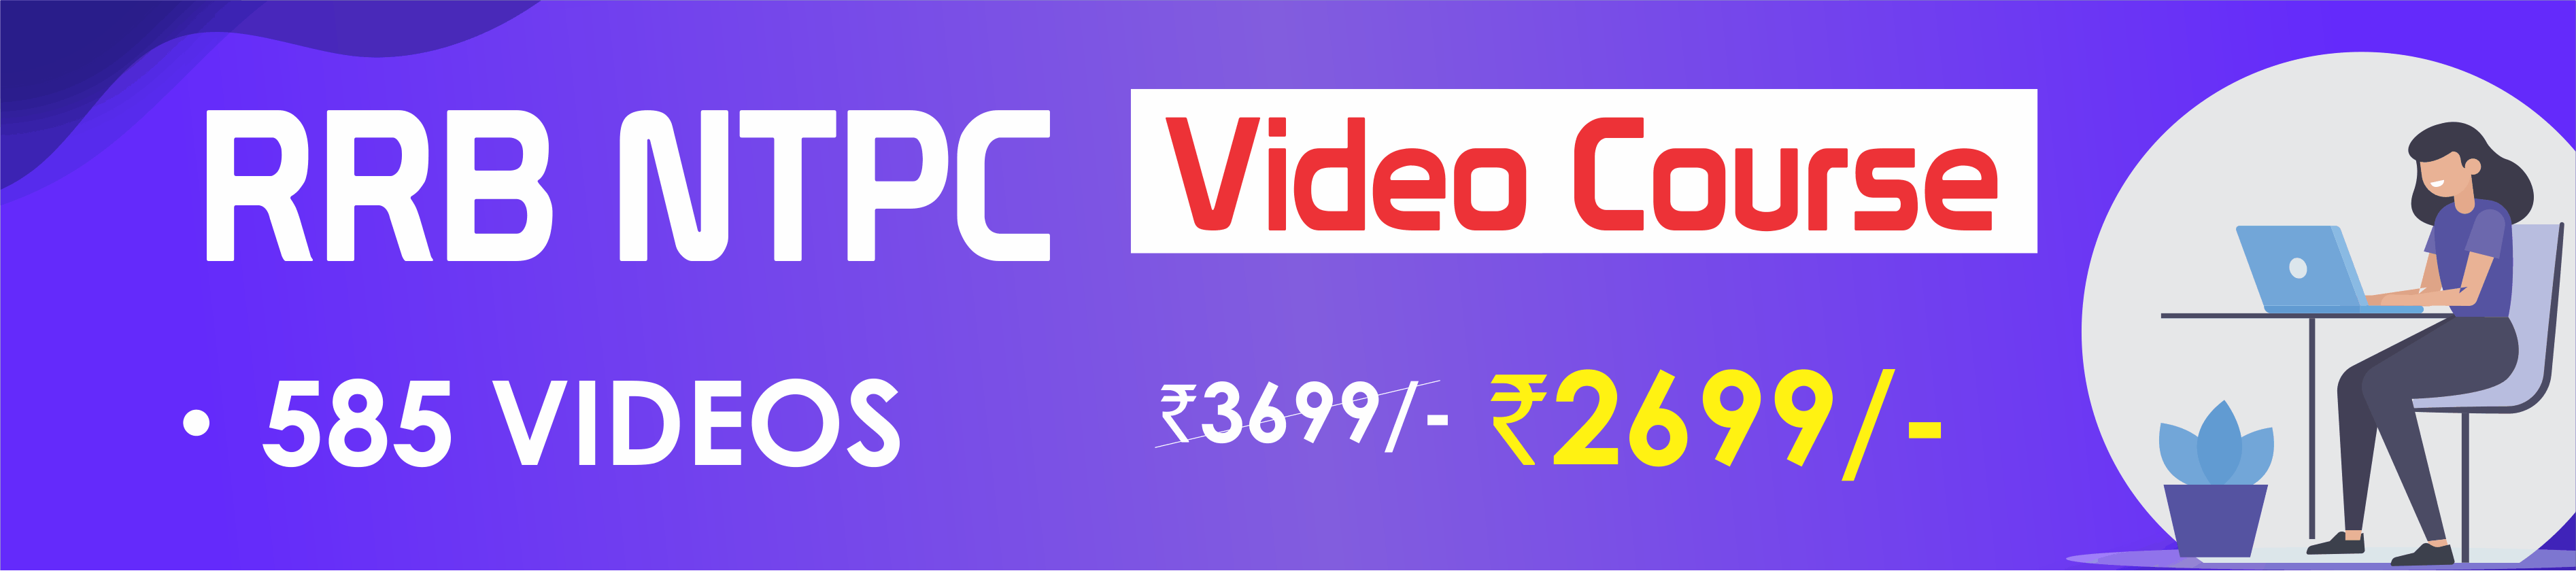 rrb ntpc video course